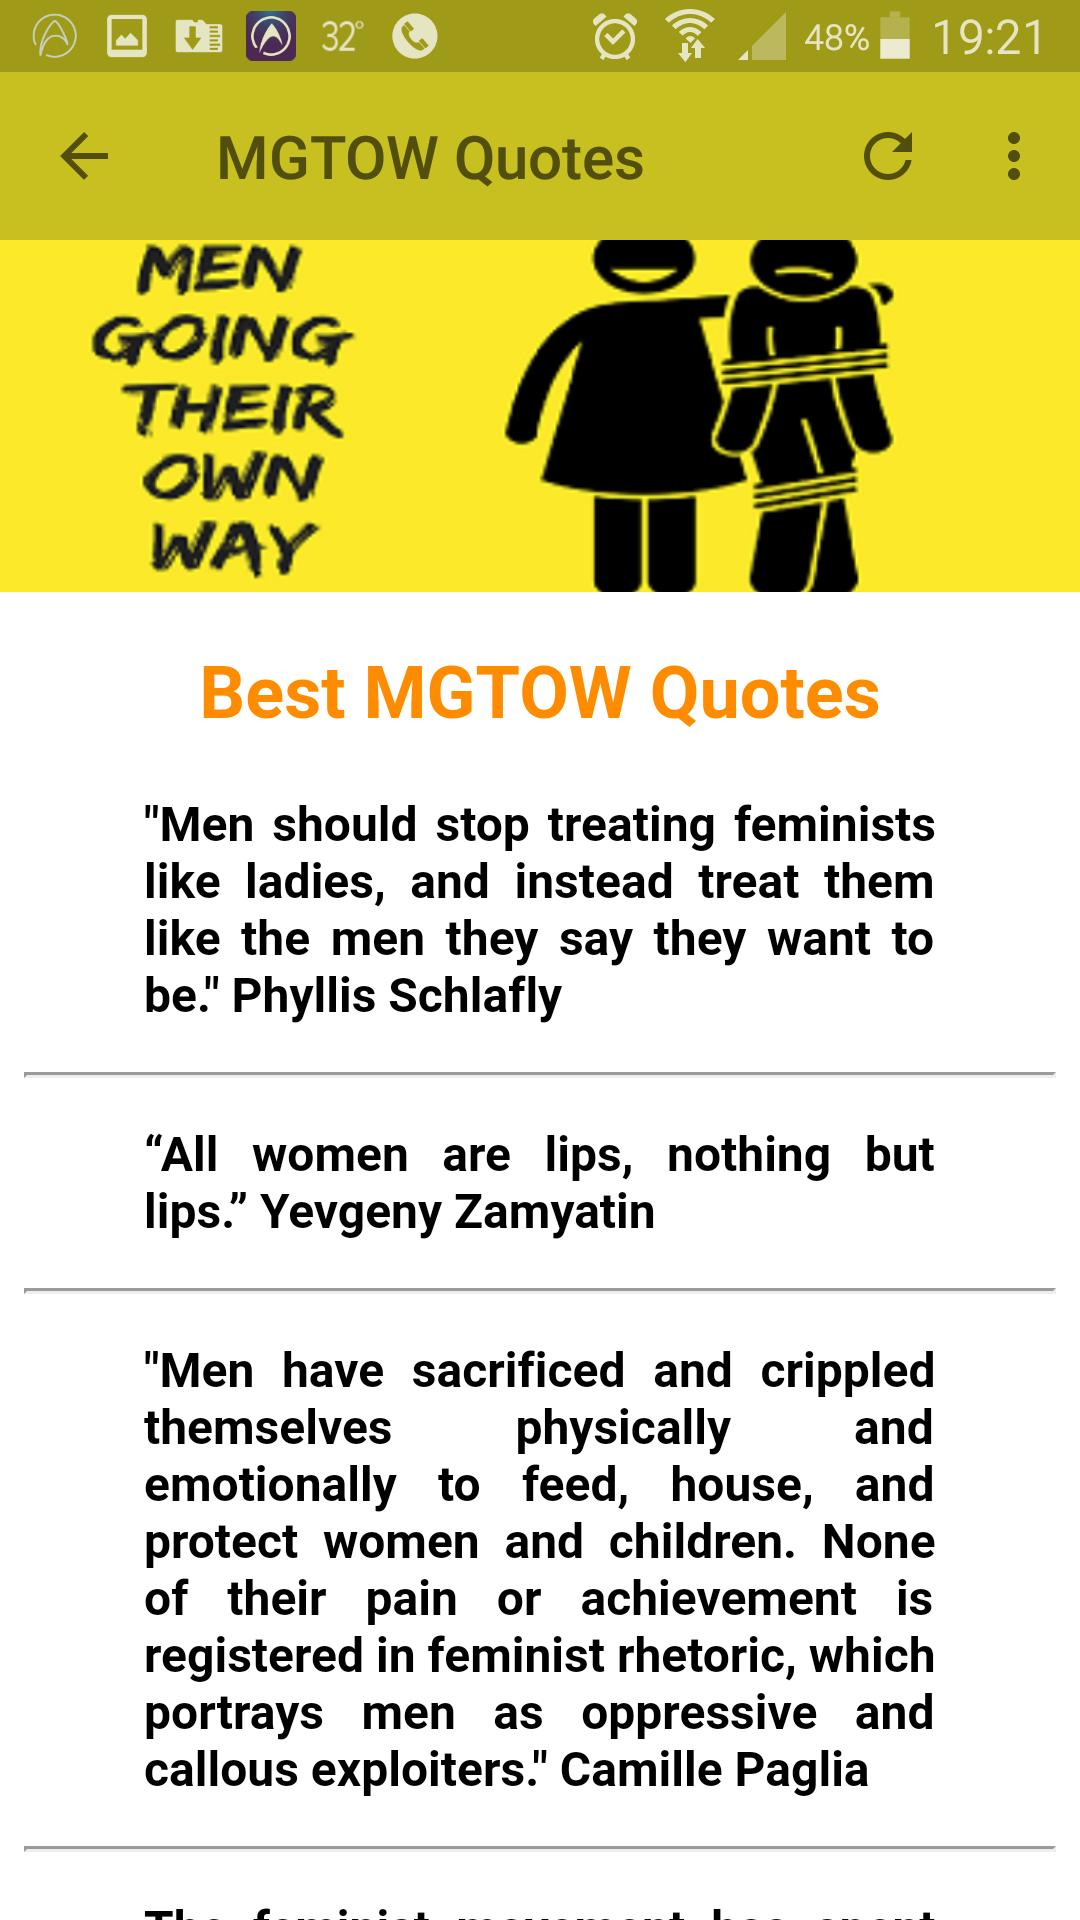 Why You Should Go Mgtow